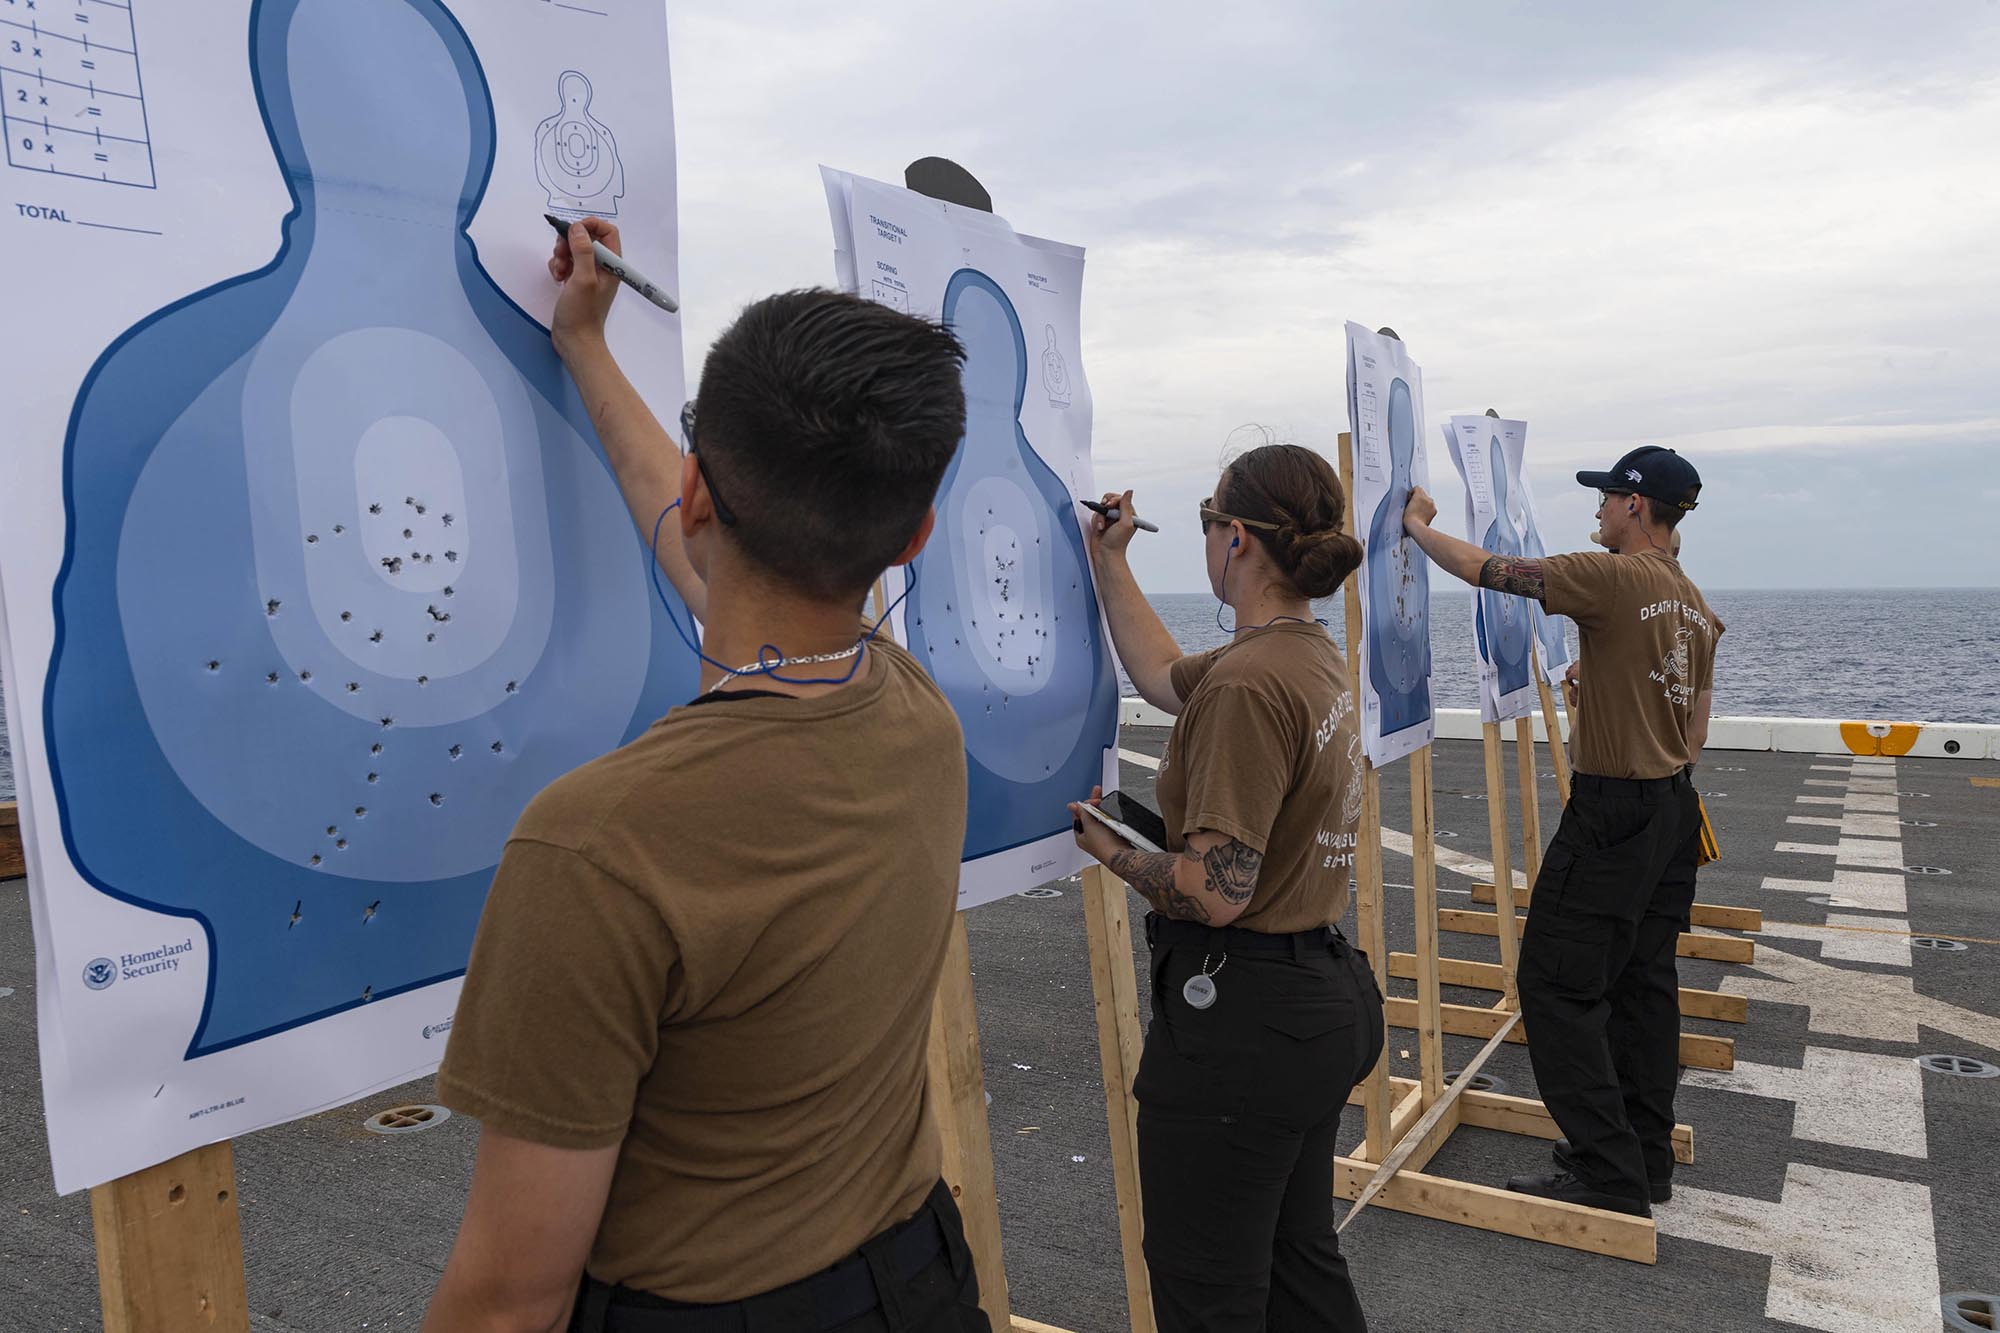 Sailors aboard USS New Orleans (LPD 18) serving as weapons instructors score targets May 30, 2021, following a qualifying gun shoot for sailors assigned to the ship in the East China Sea. (MC2 Desmond Parks/Navy)